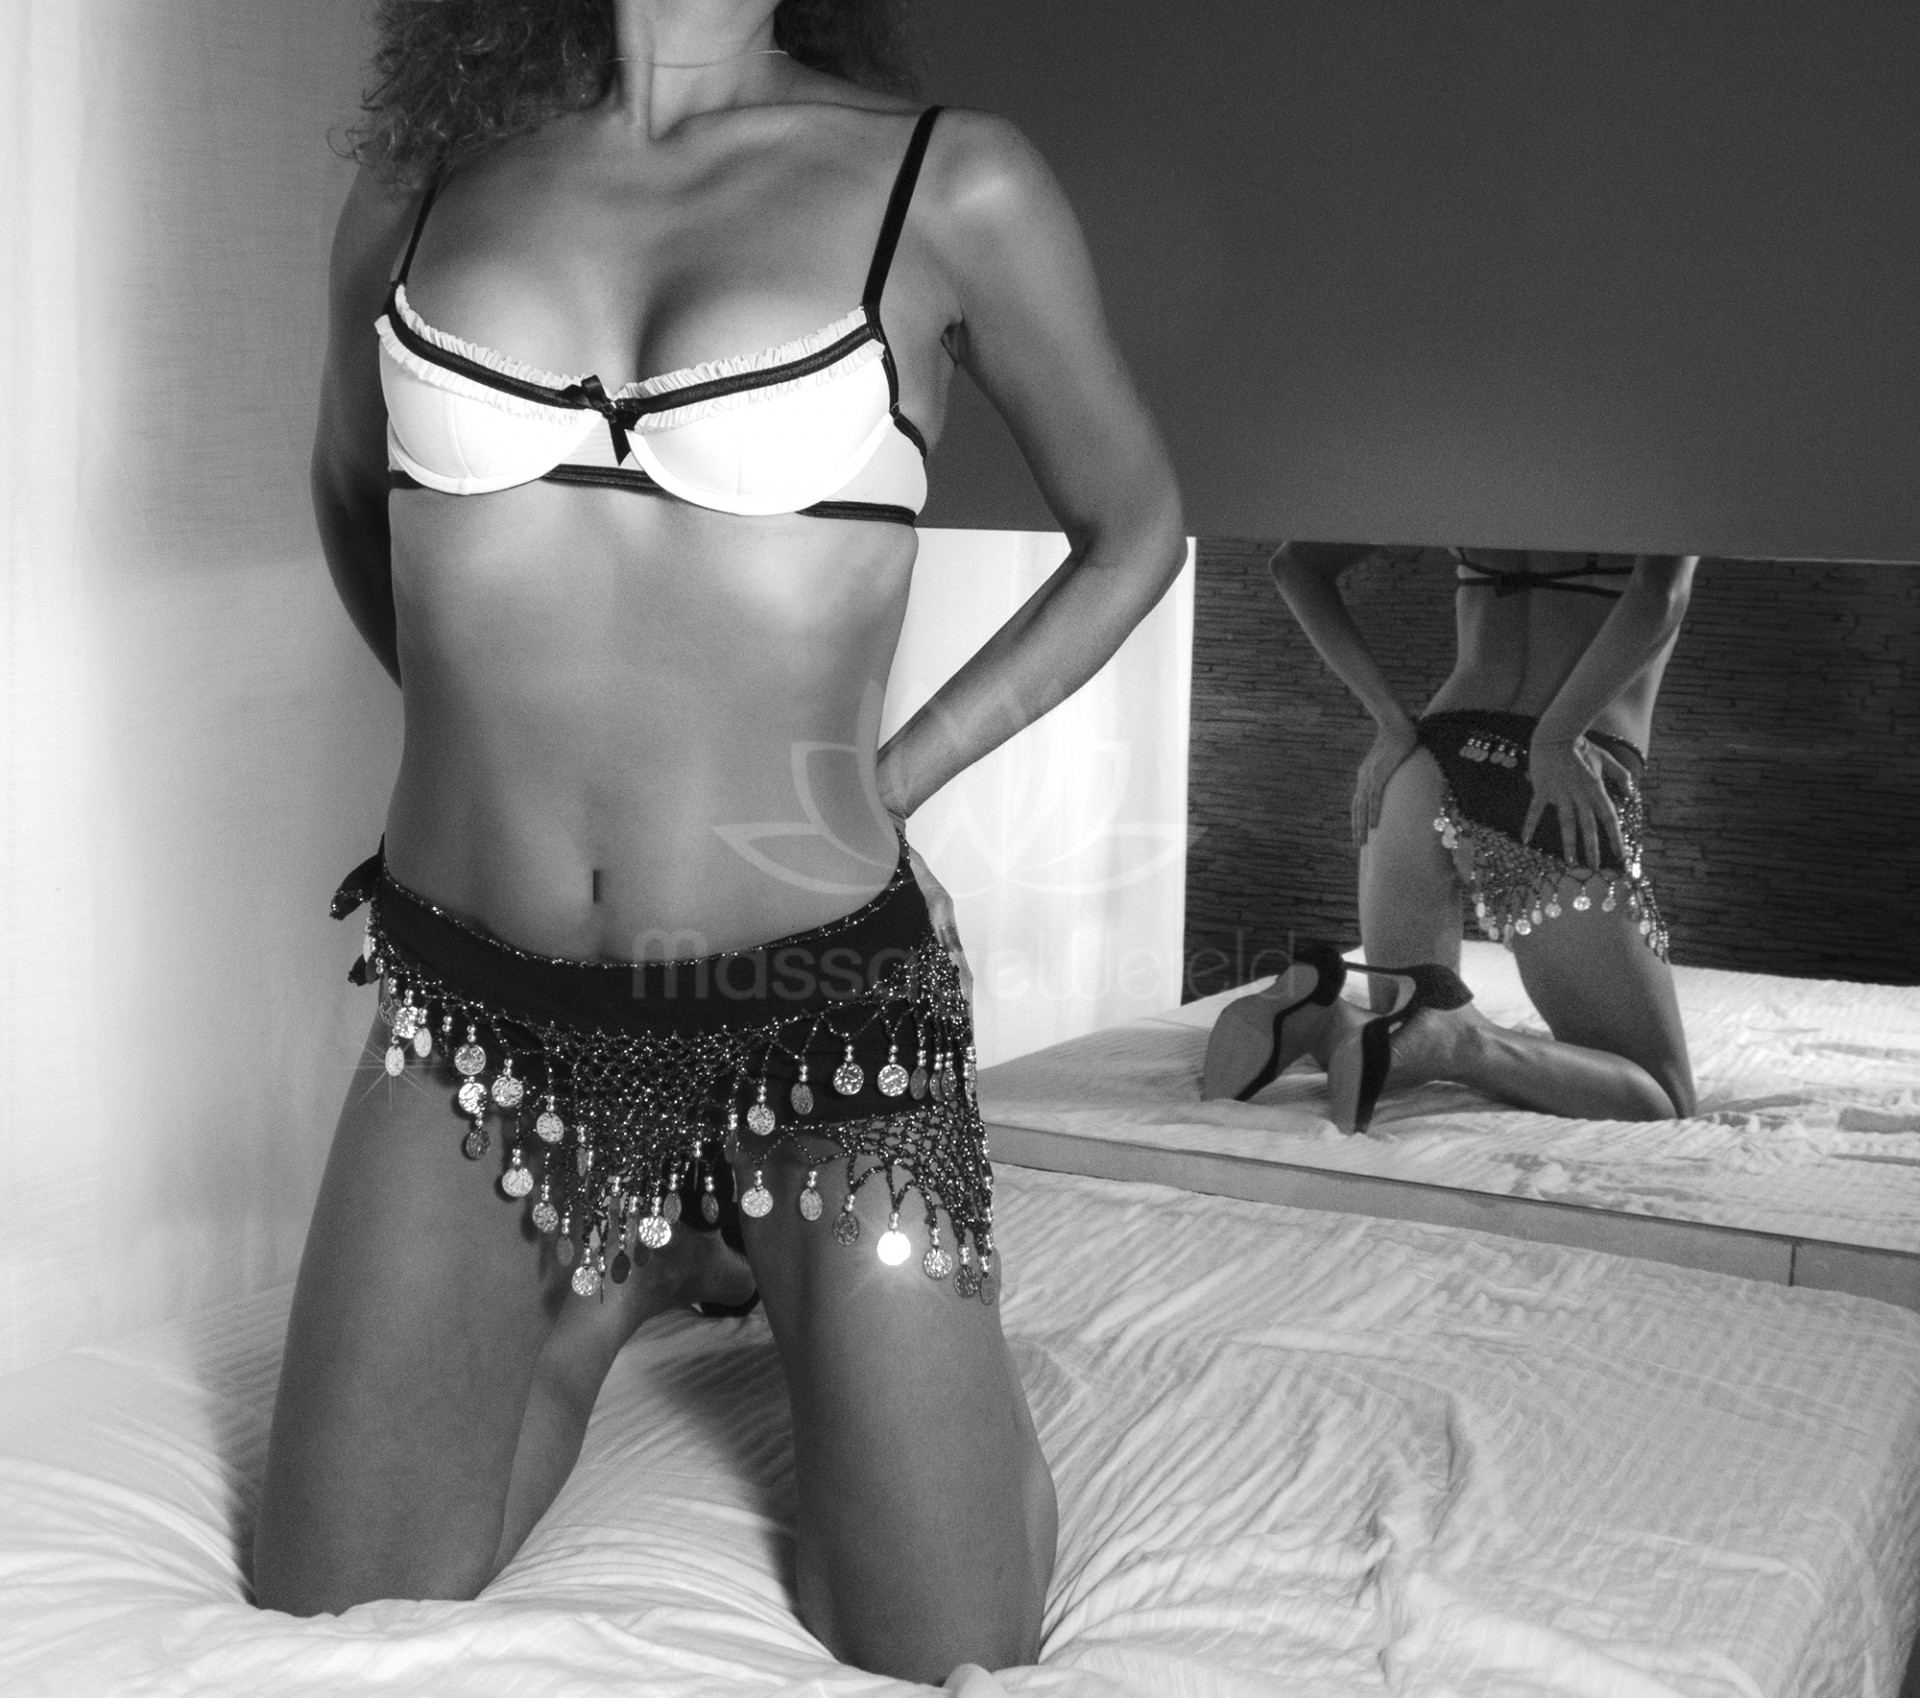 kate massage den haag erotische massage particulier